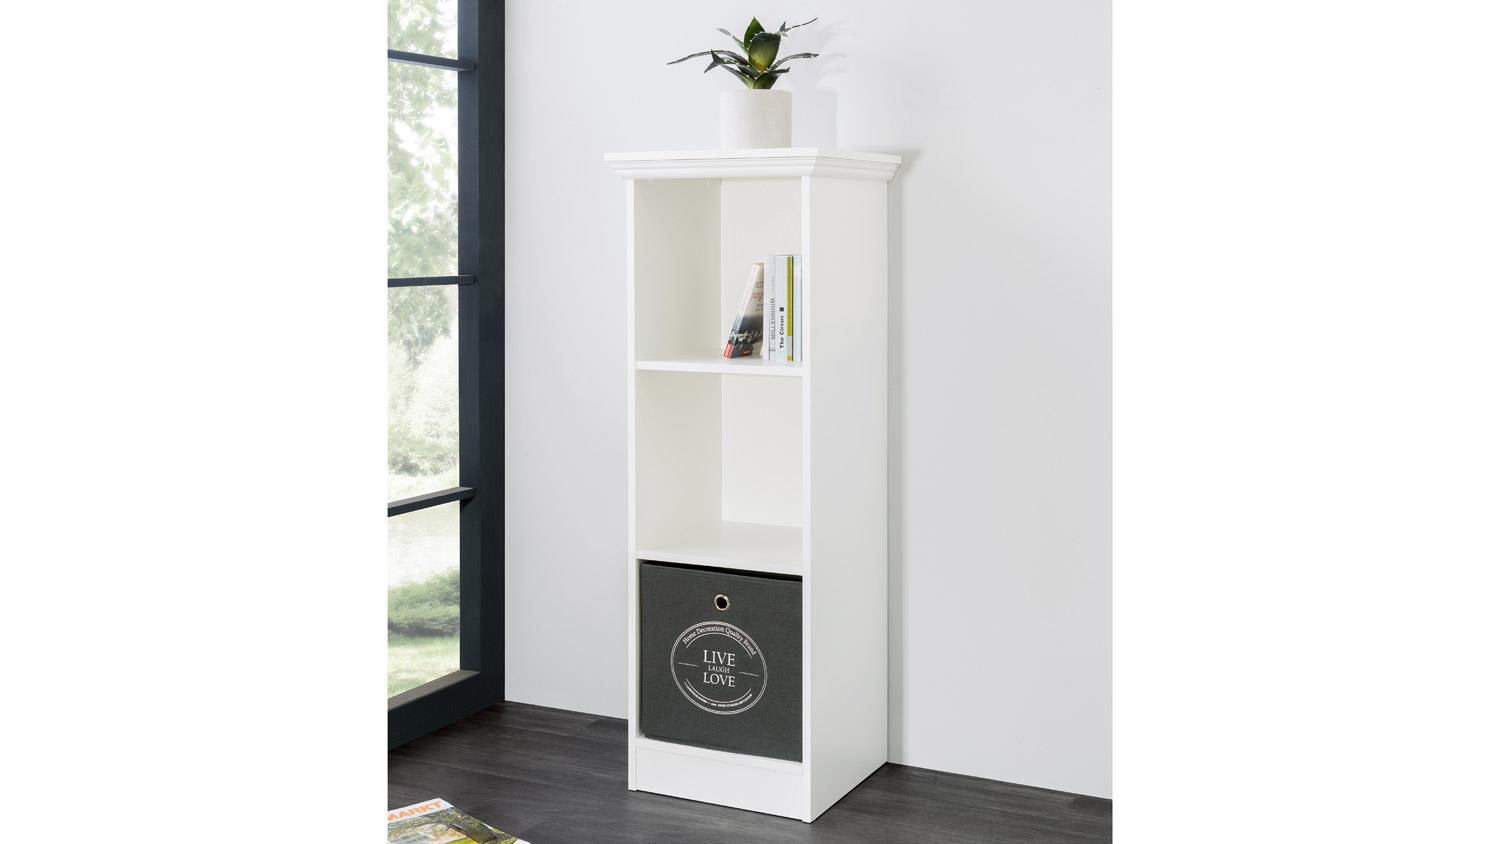 Bücherregal Landhausstil Weiß Regal Landwood Bücherregal In Weiß Mit 3 Fächern 42 Cm